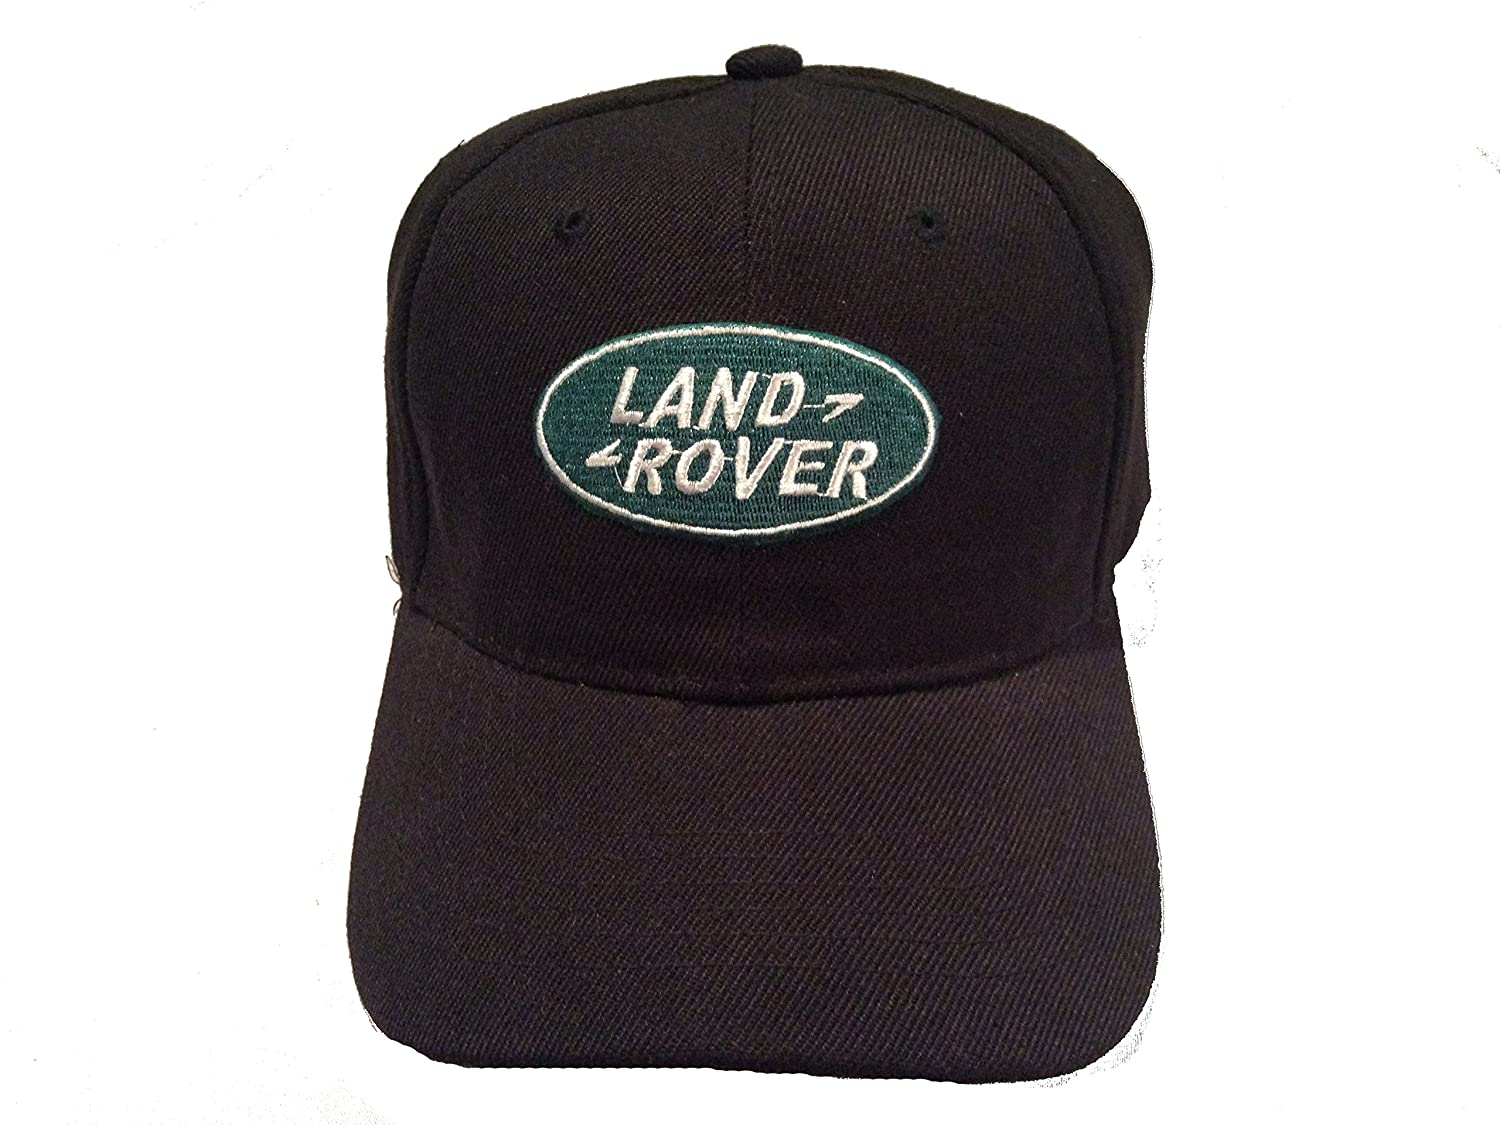 5ee283f4adc Amazon.com  Land Rover Baseball Cap Hat Black. Adjustable. New!  Sports    Outdoors